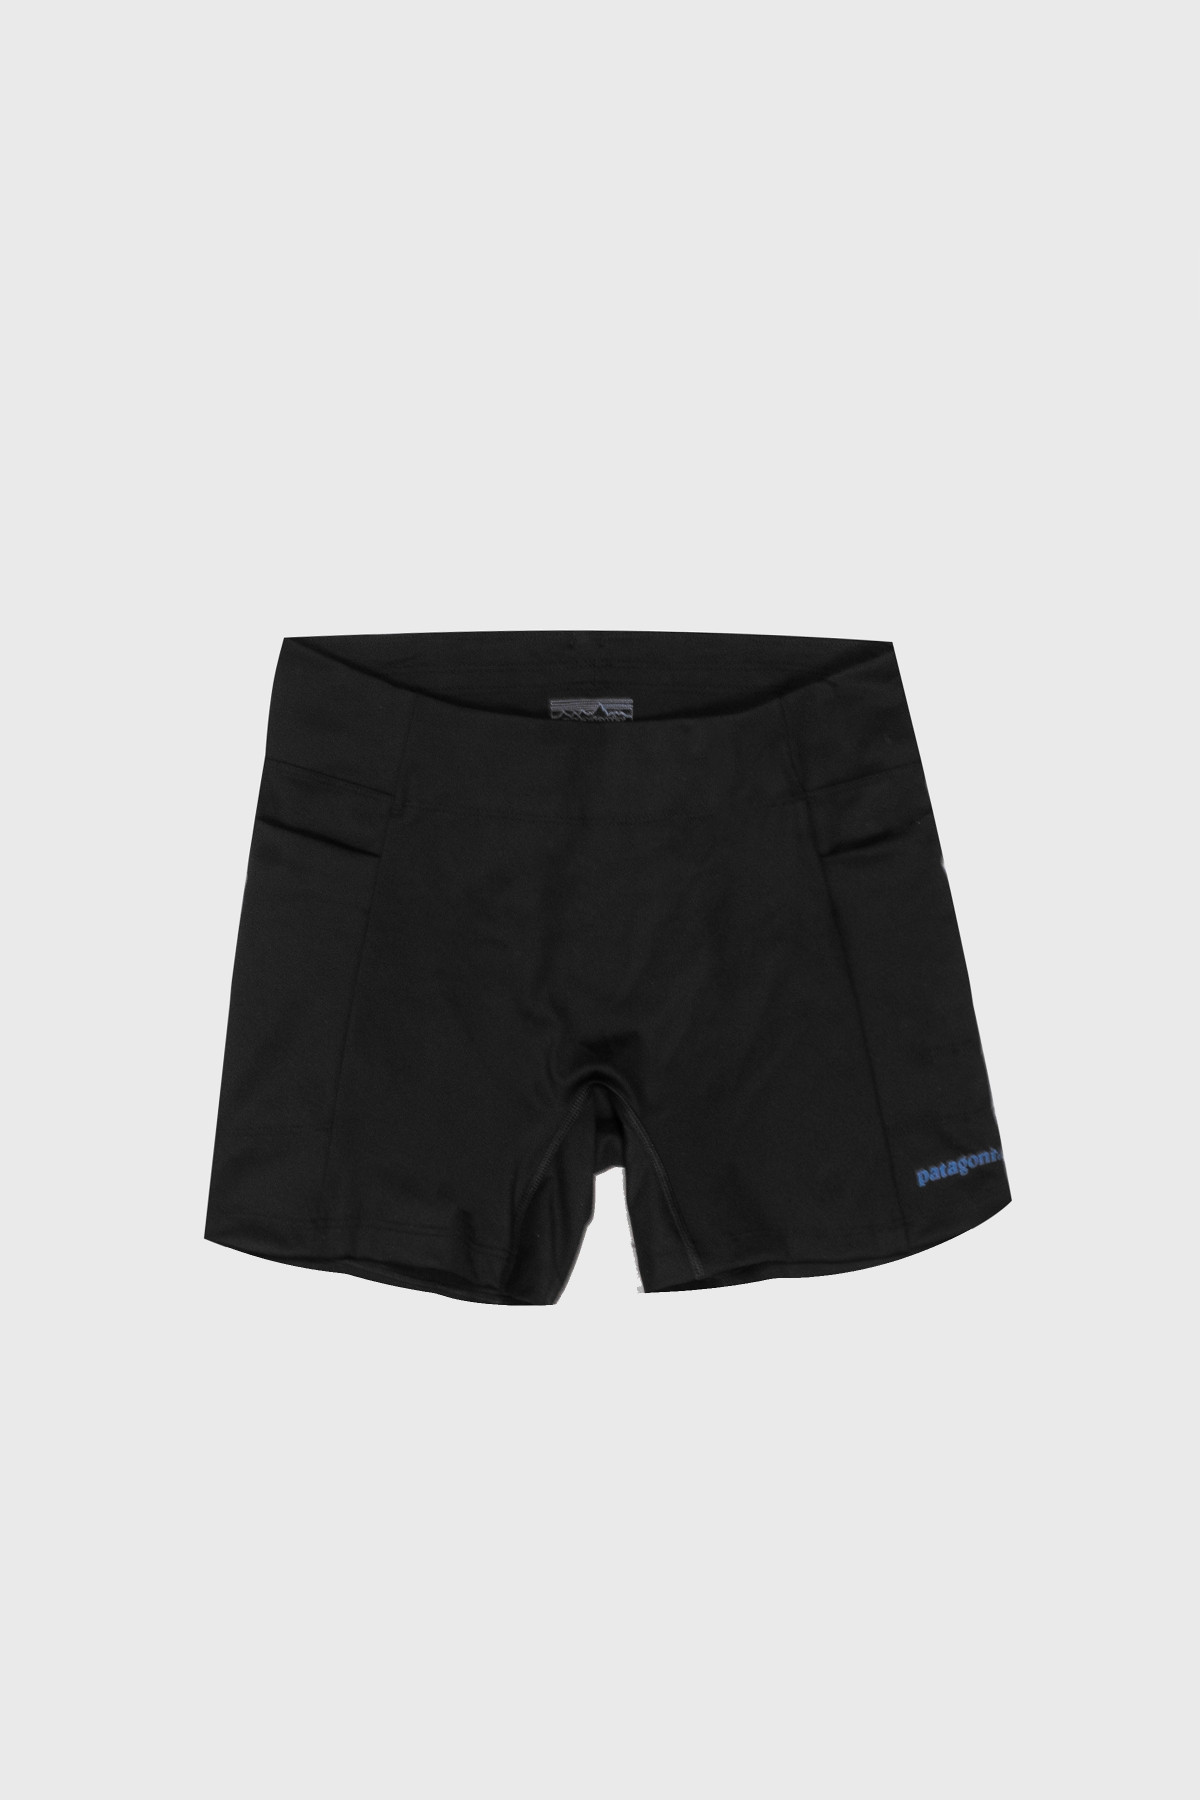 "patagonia - Women's Endless Run Shorts 4 1/2"" - black"